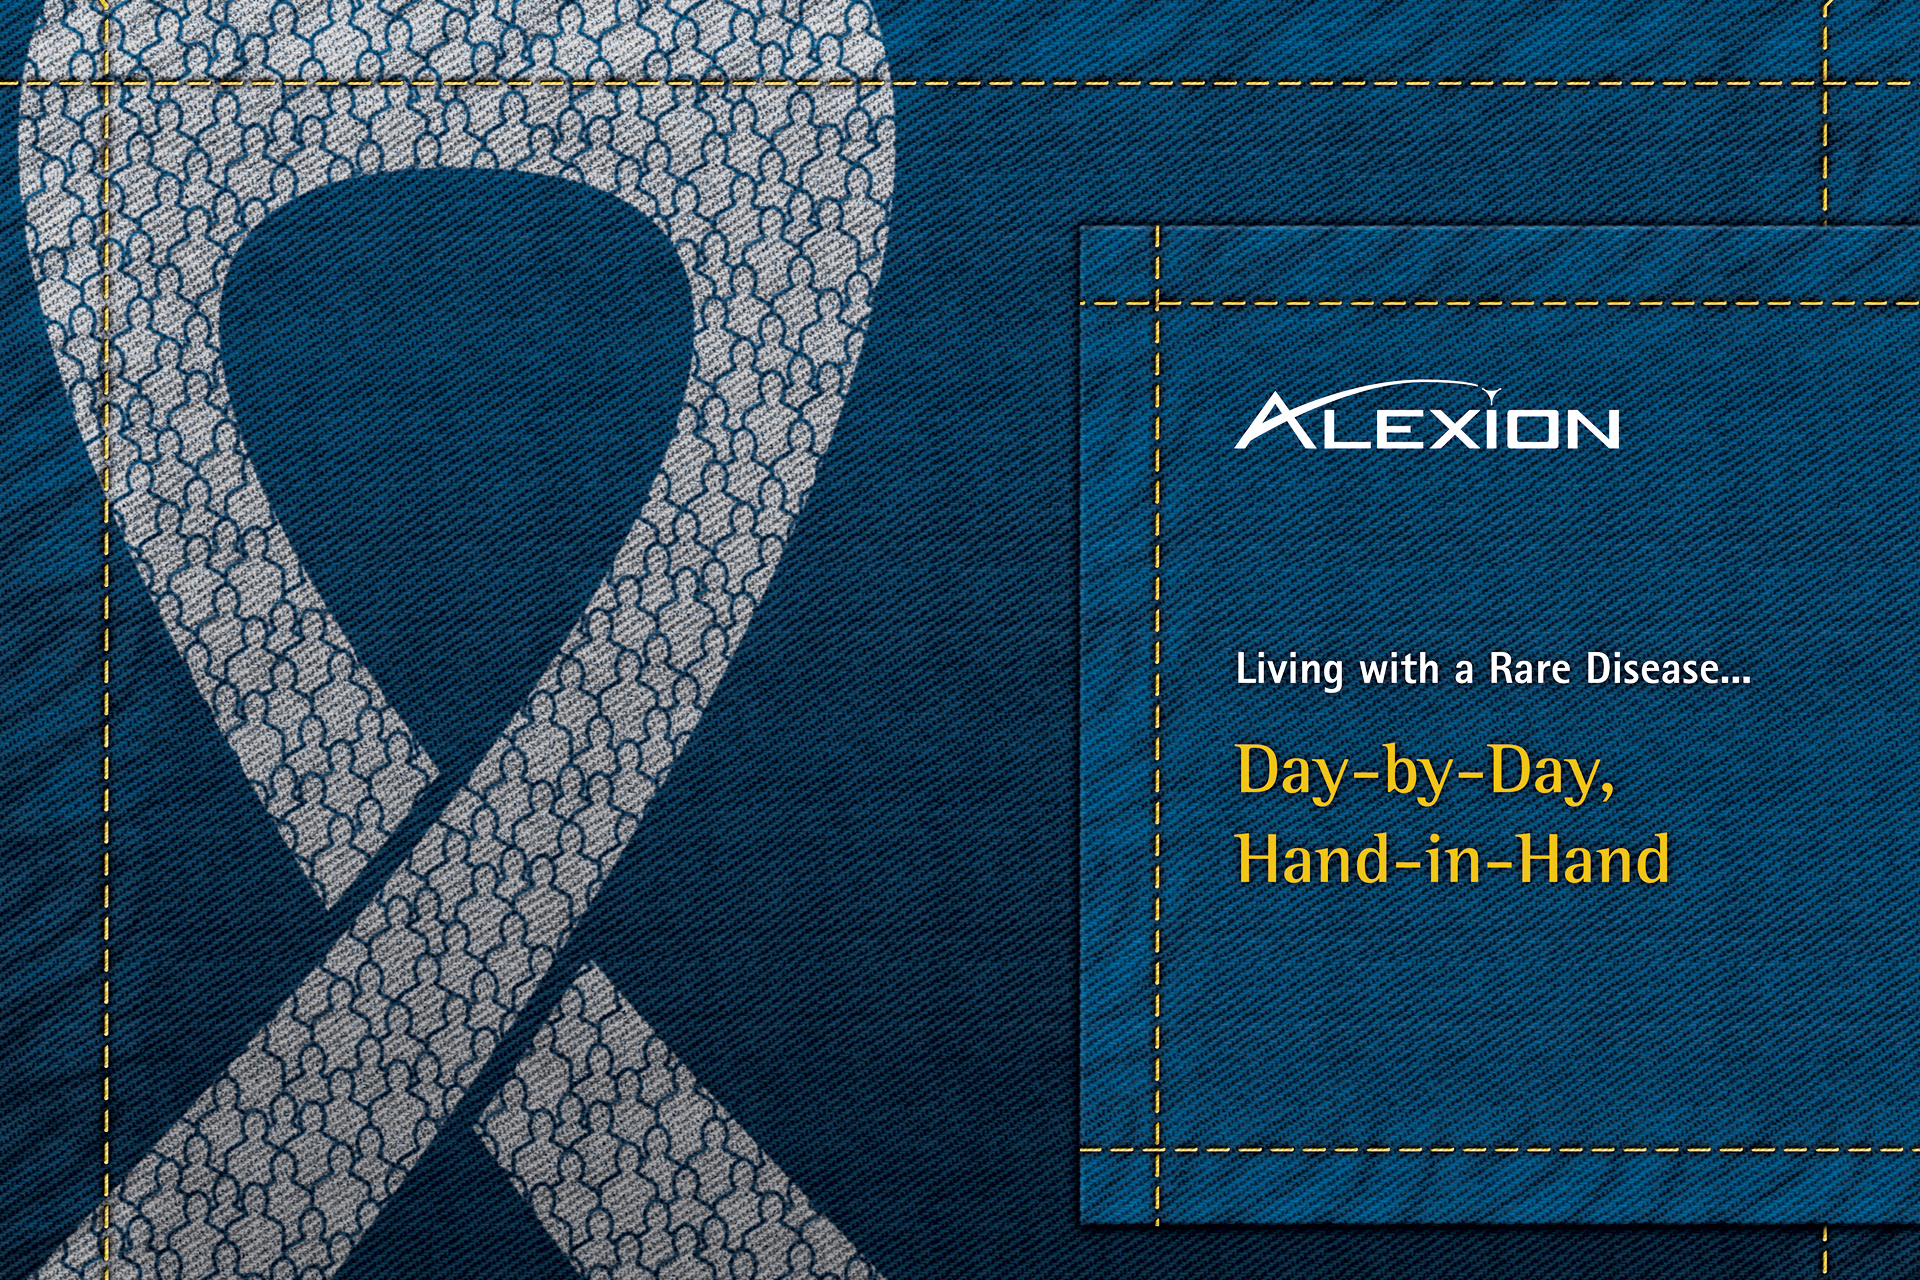 Flexion Rare Disease Day